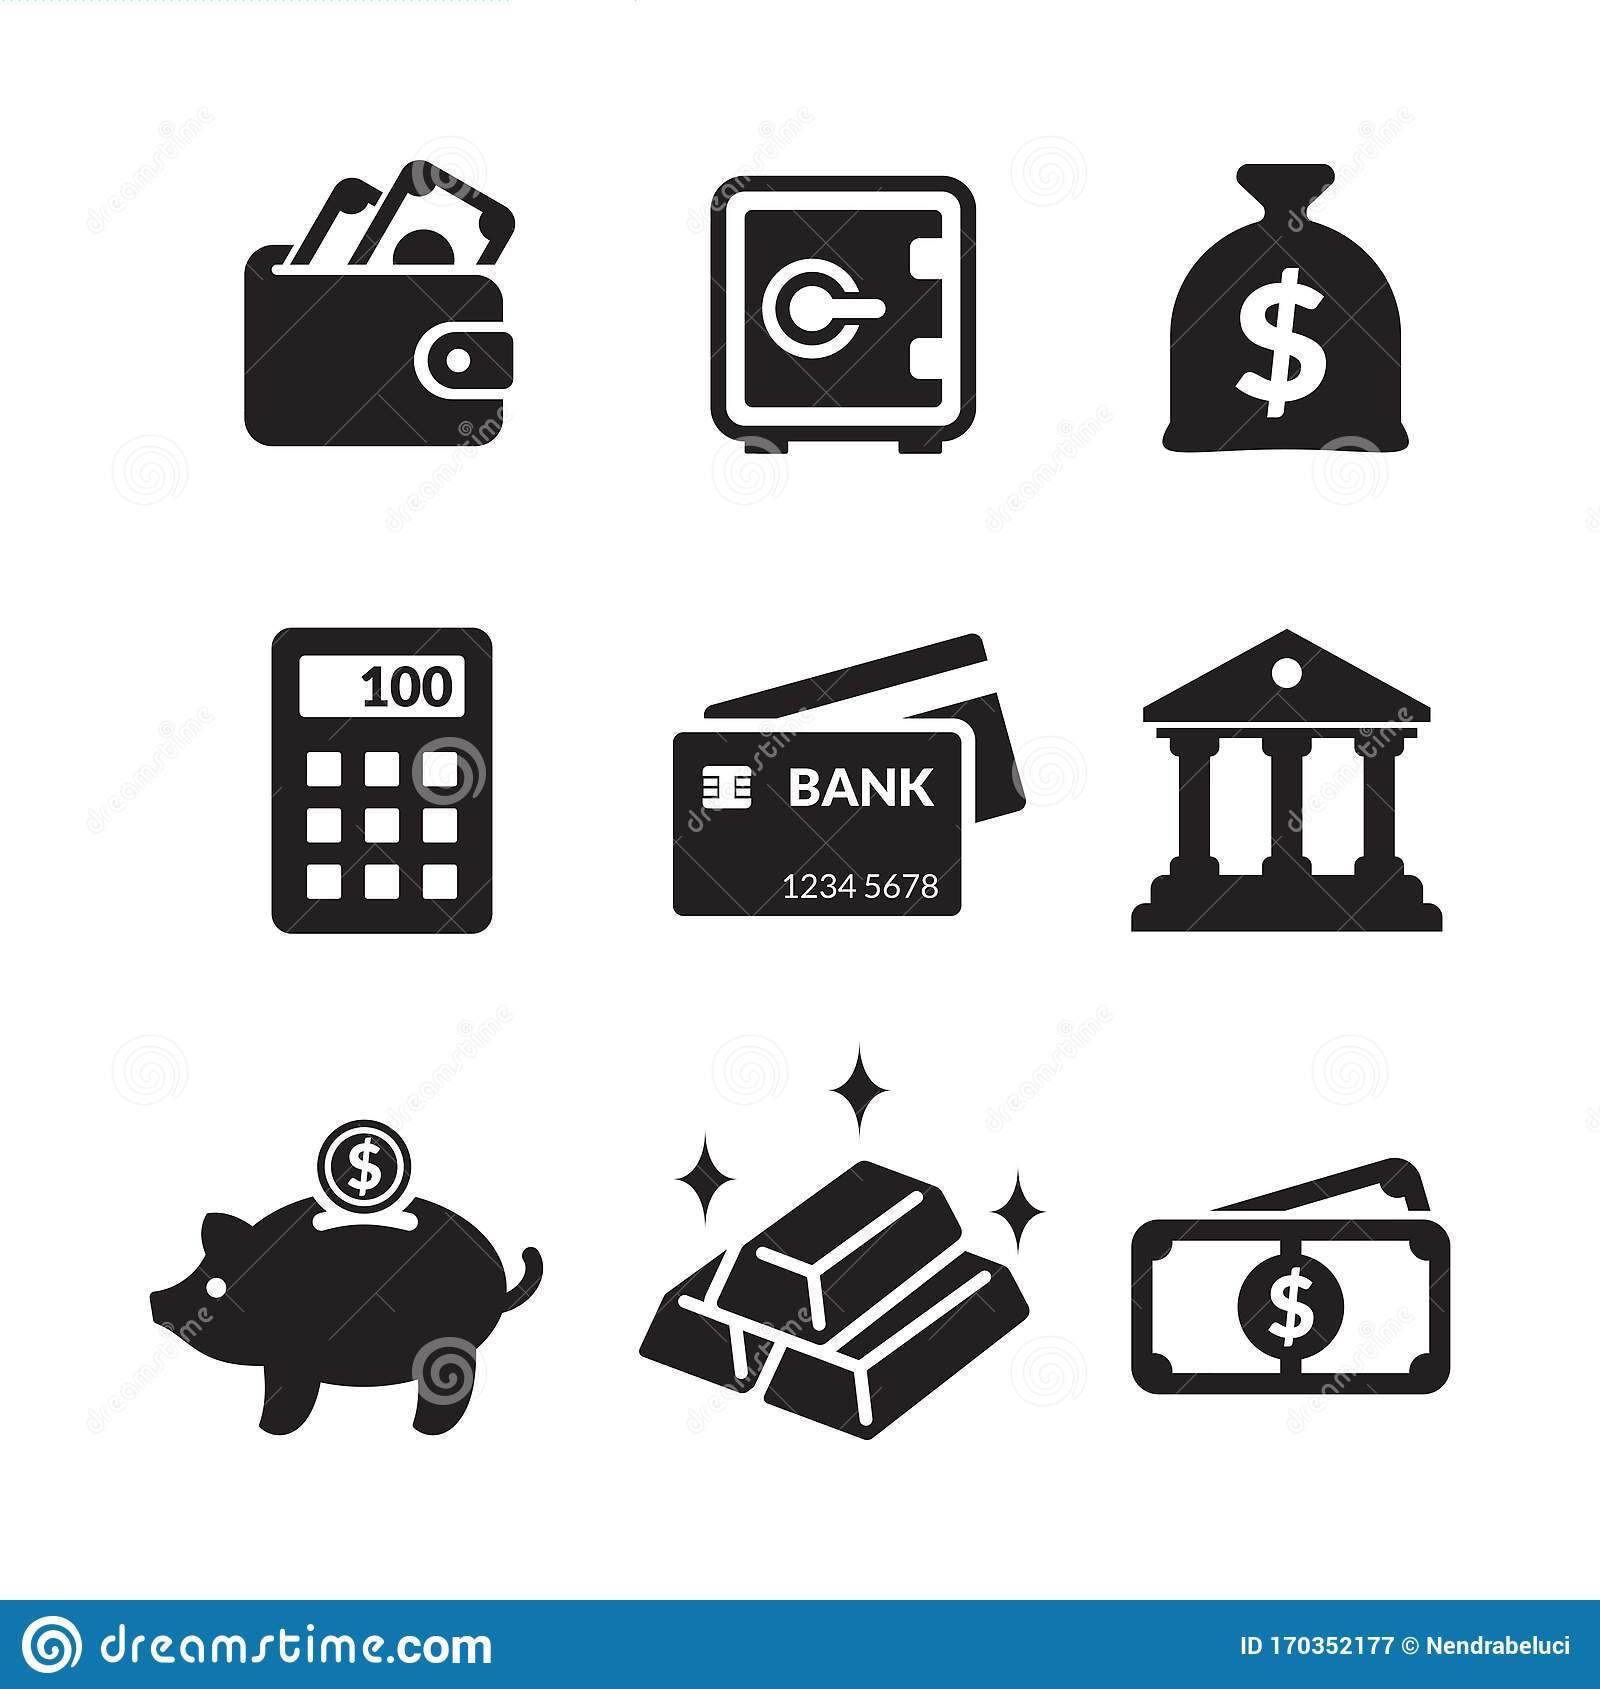 Simple Minimalist Icon Set Basic Element Of Banking Financial And Investment Activities Stock Vector Illustration Of Locker Business 170352177